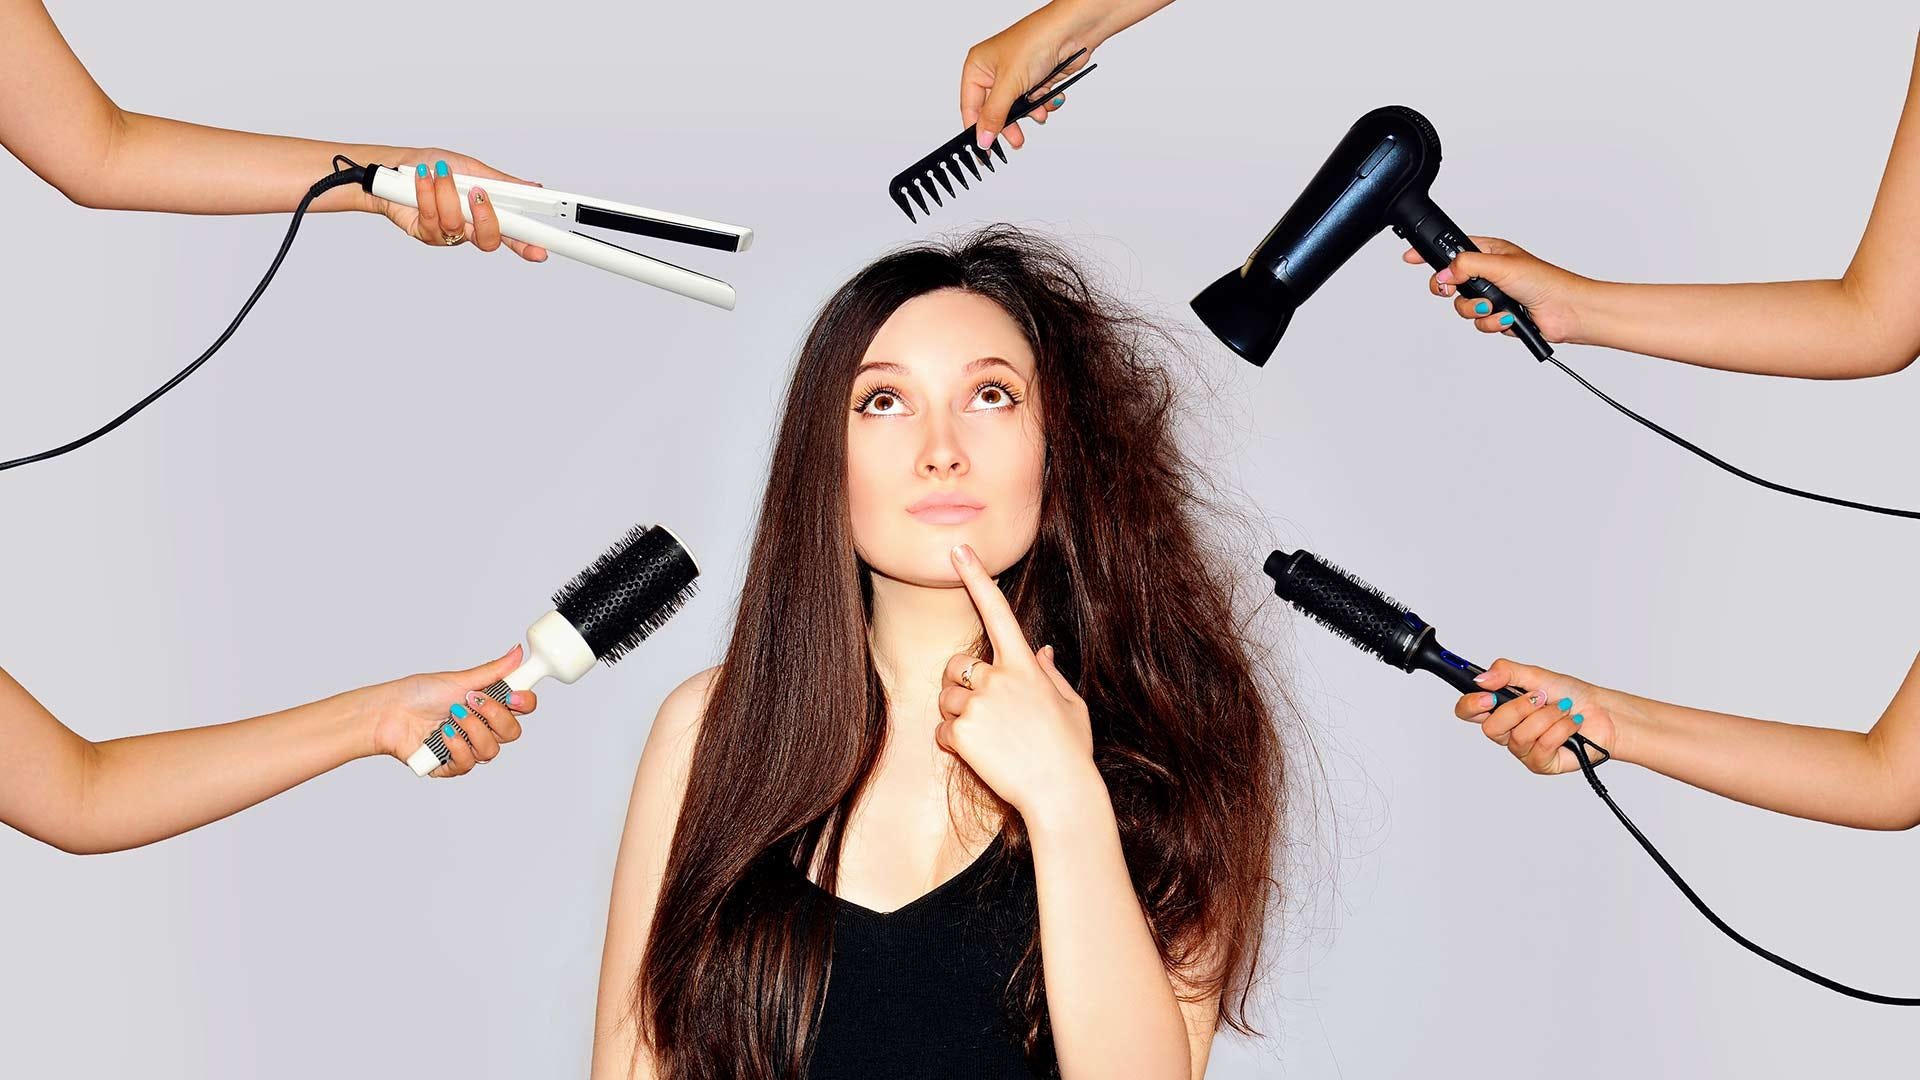 A woman surrounded by hands holding hair styling tools like flat irons, blow dryers, and other heat-damage causing devices.